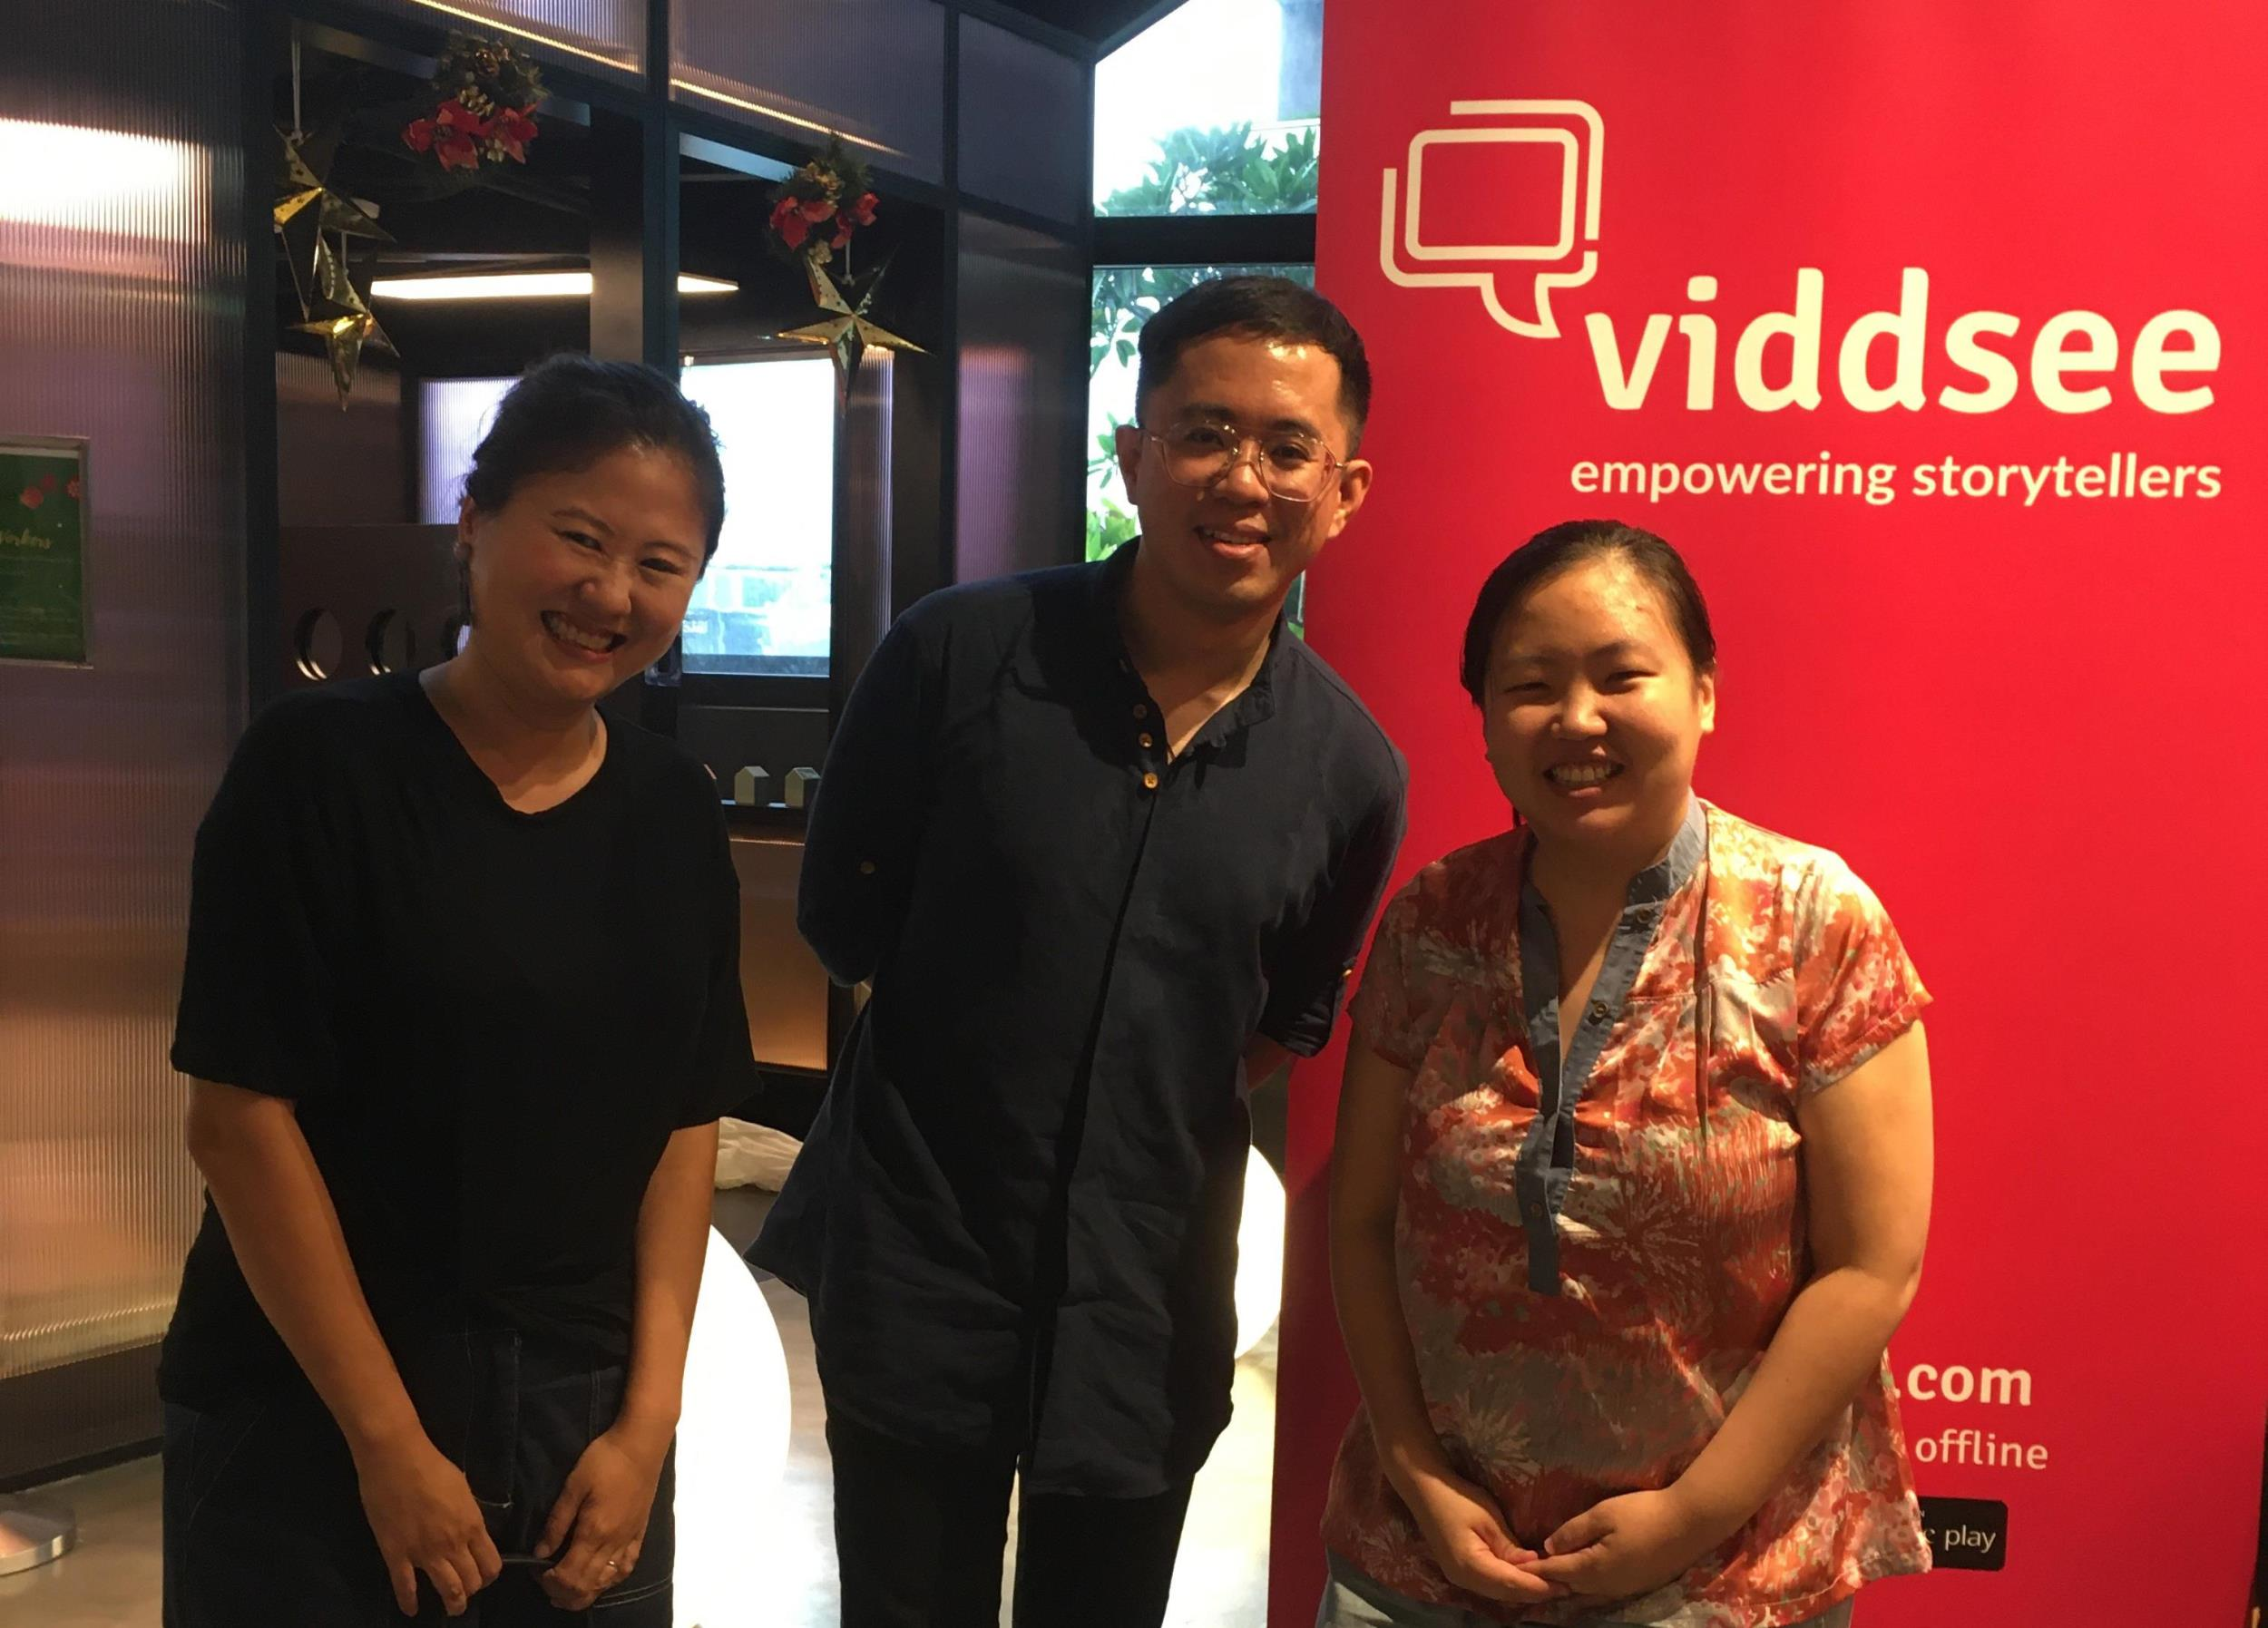 WritersLab 2019 participant Priscilla Goh at Viddsee